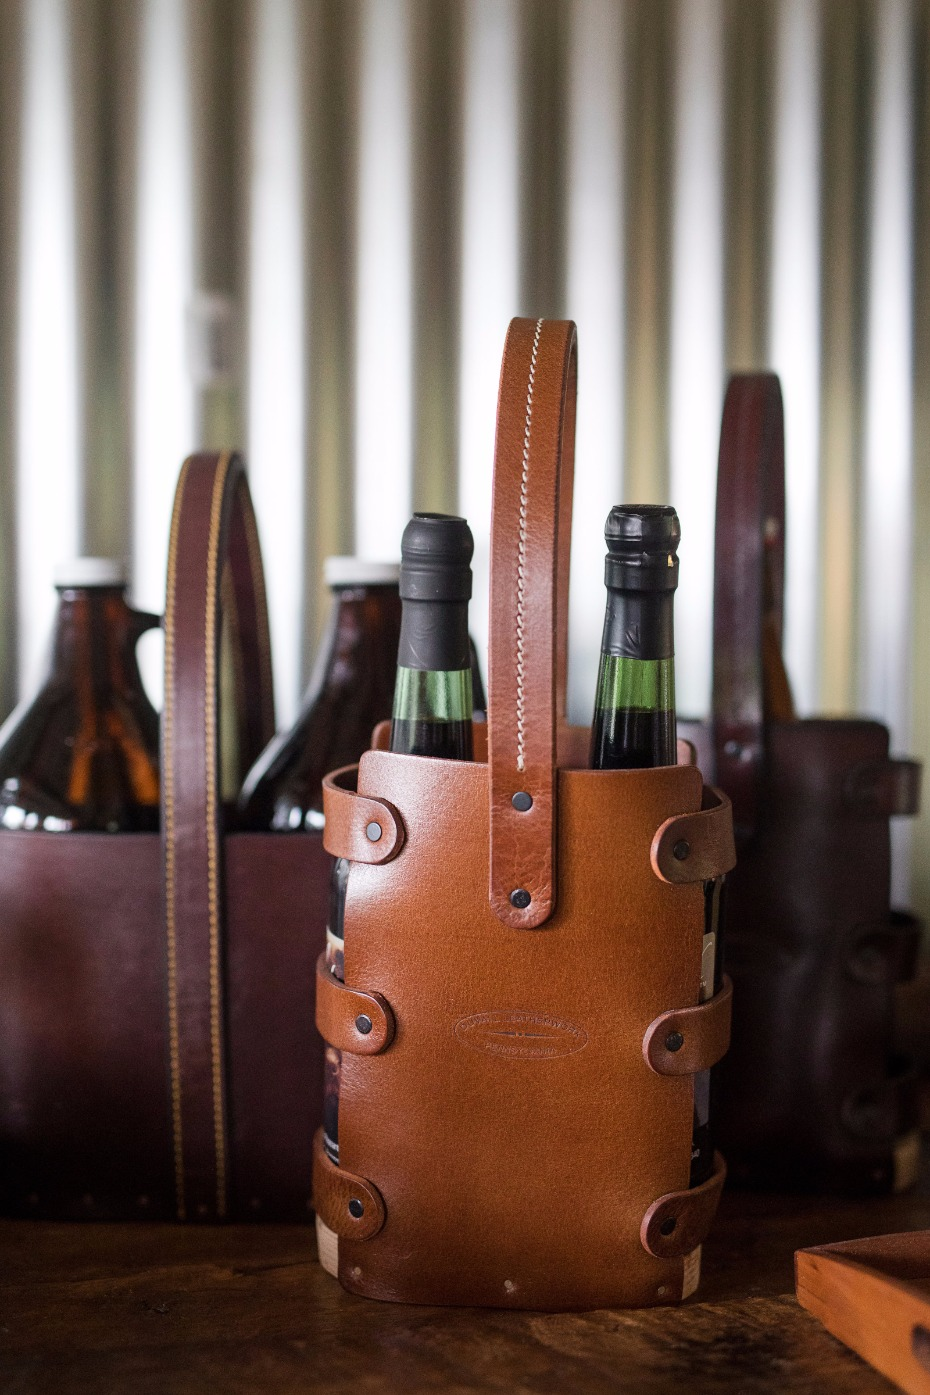 wine and growler caddies are the prefect groomsmen gifts